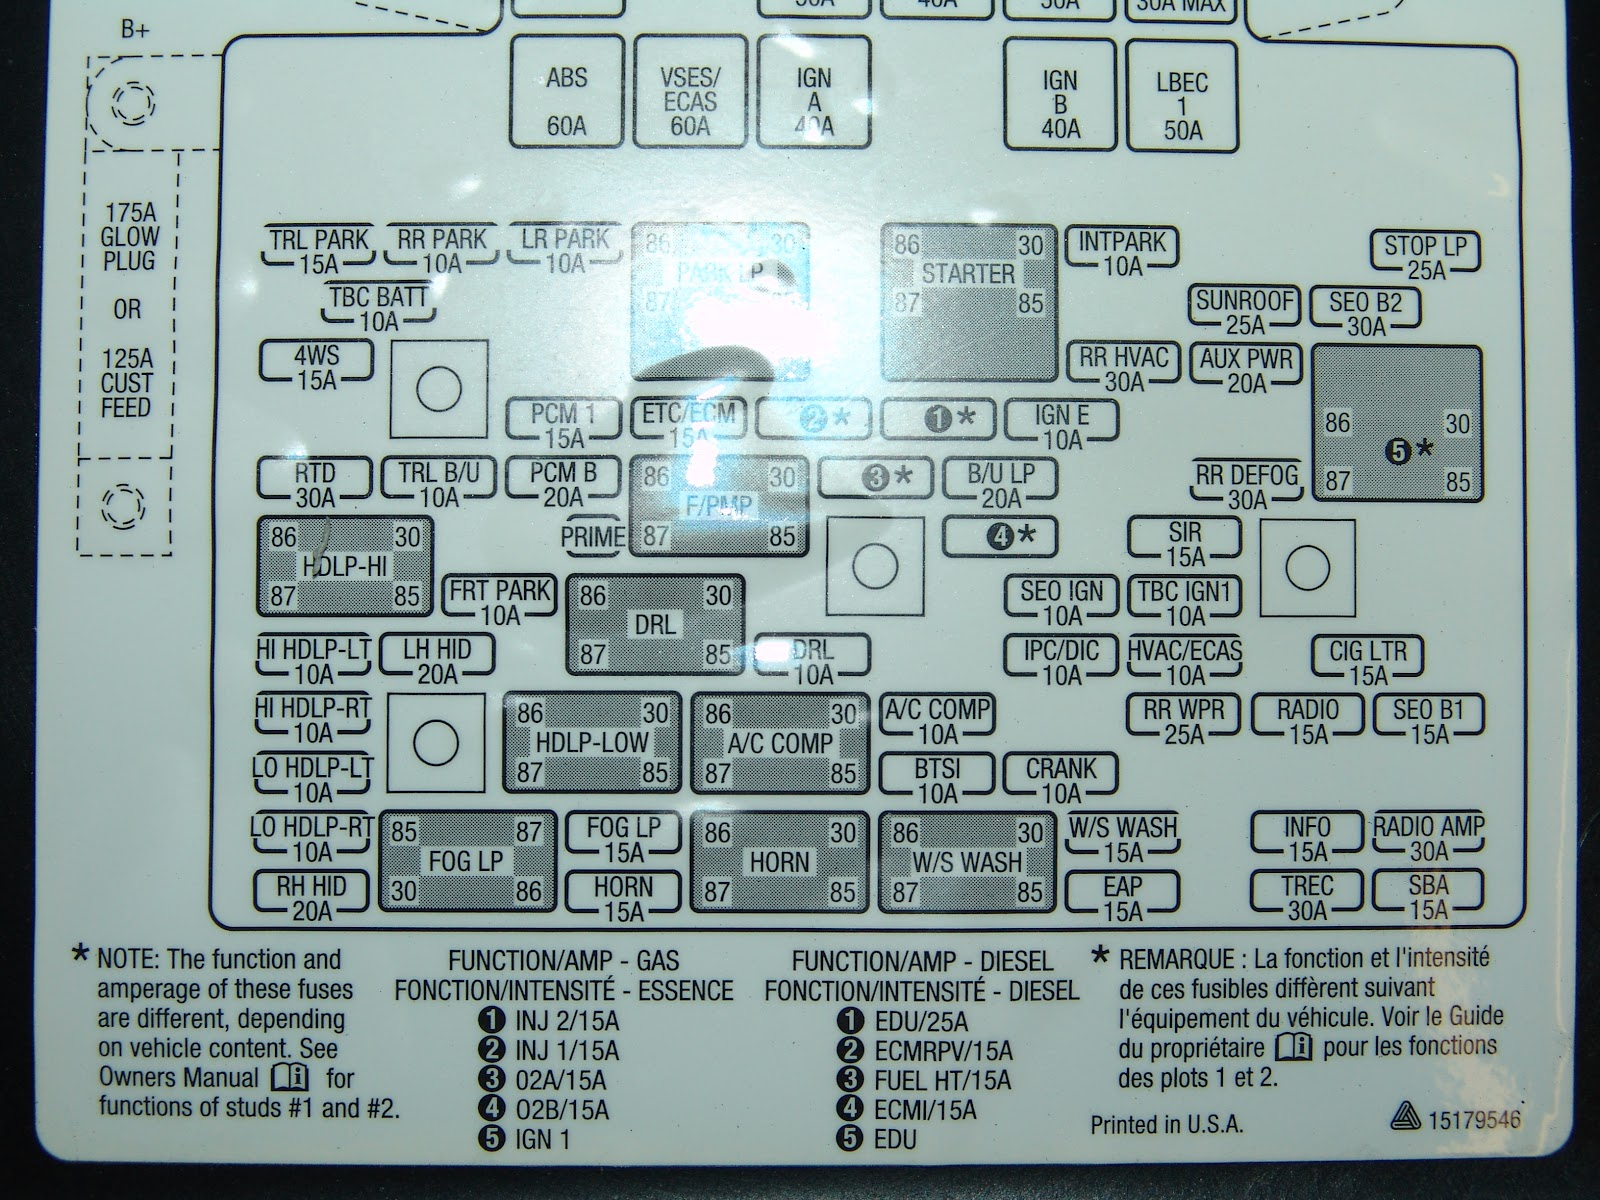 2007 freightliner fuse panel diagram wiring diagrams cheap Freightliner Dash Wiring Diagram